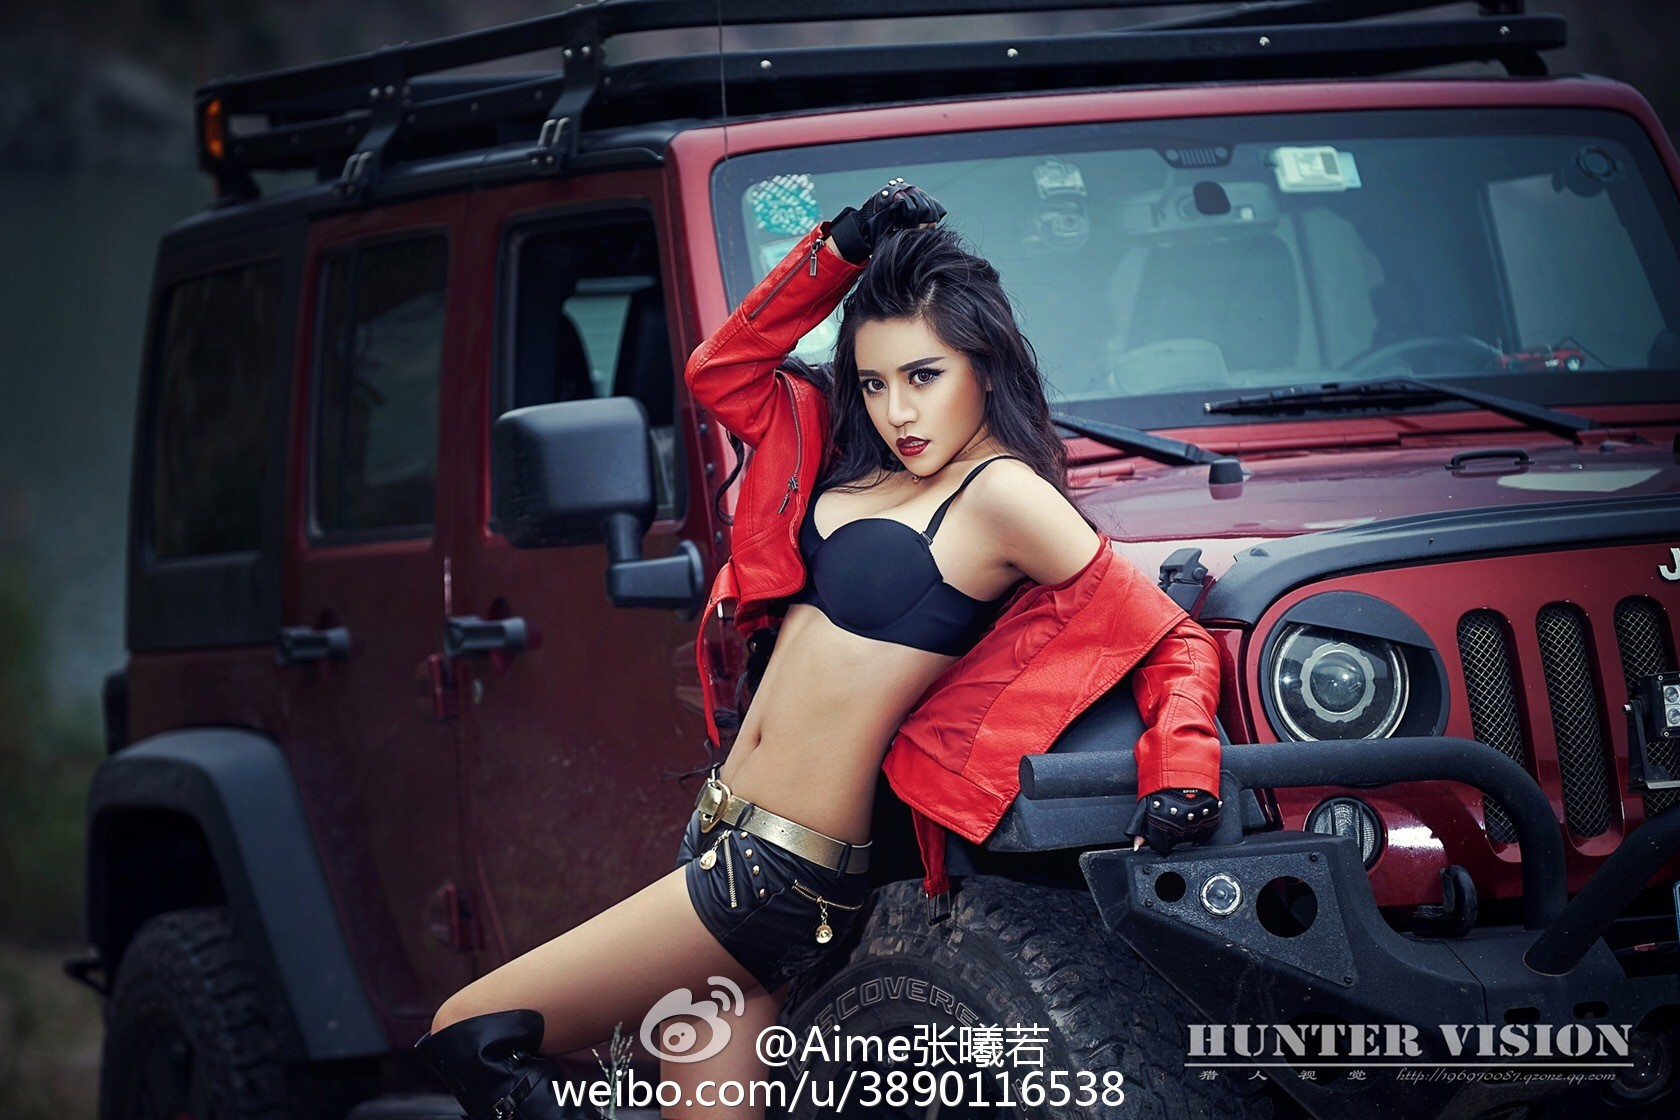 Ferrari Car Symbol Wallpaper Jeep Wrangler With Chinese Communist Star And Sexy Model